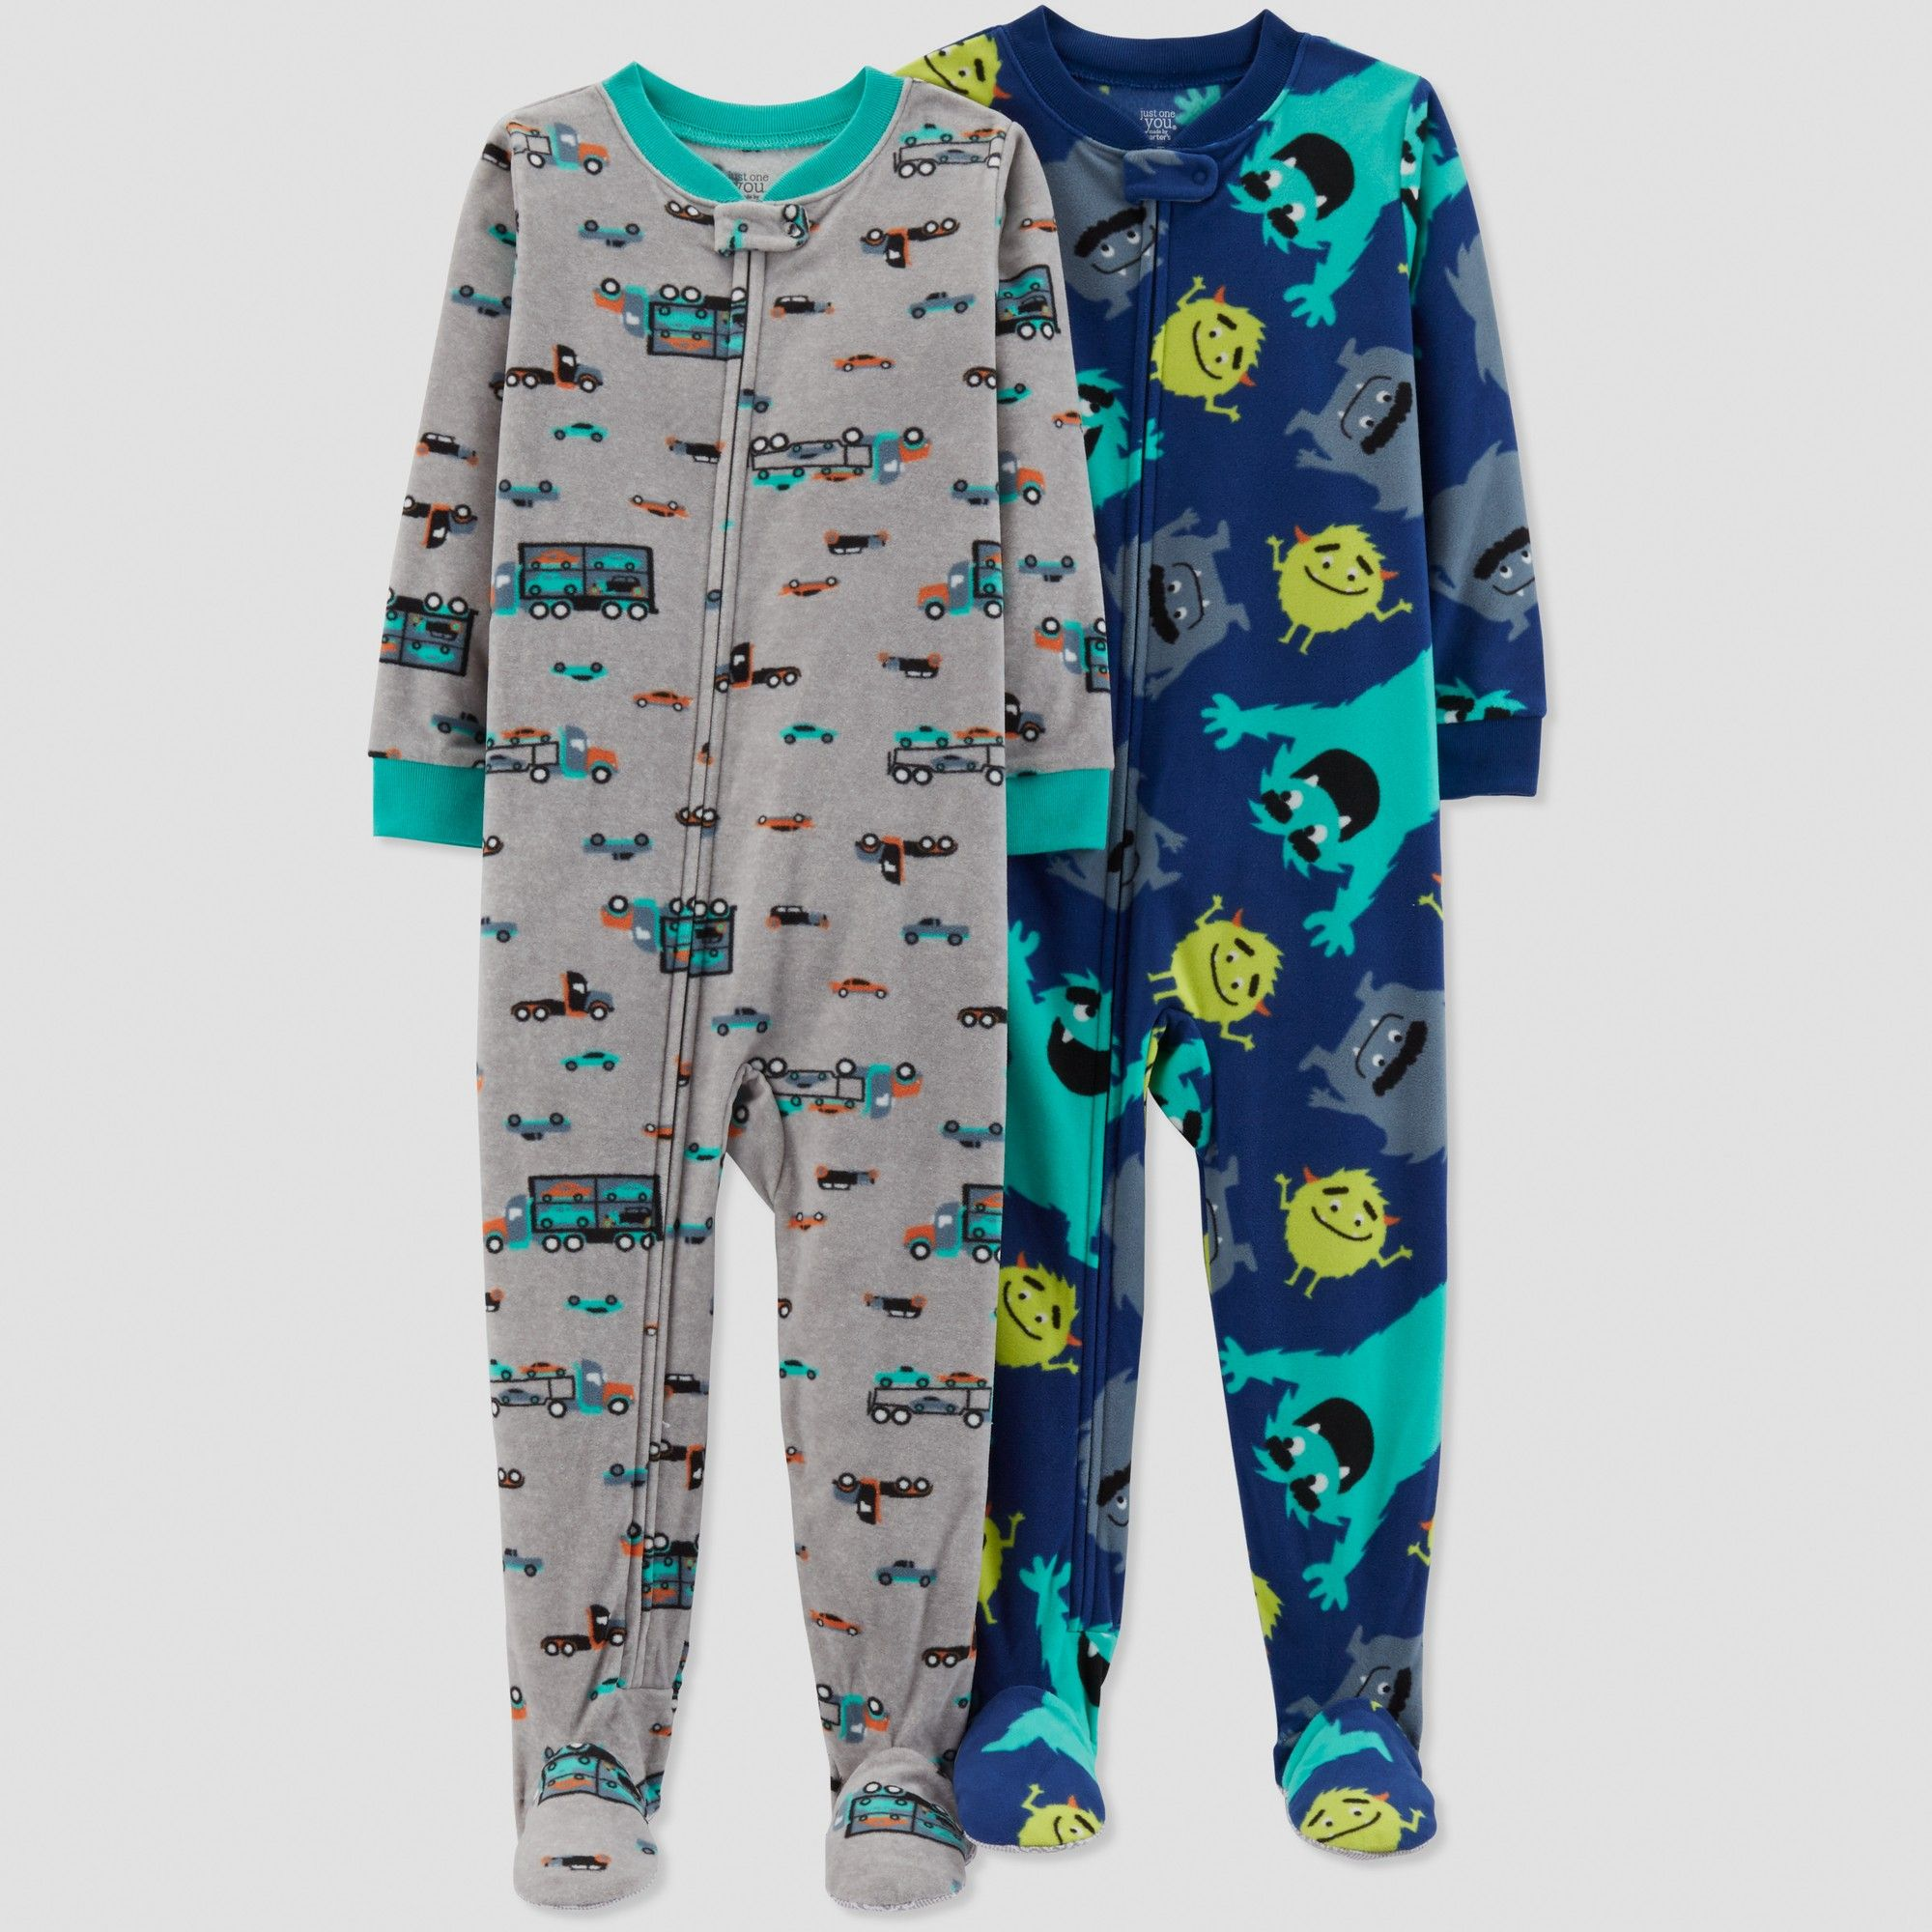 442fcfd04 Toddler Boys  Monster Pajama Set - Just One You made by carter s ...